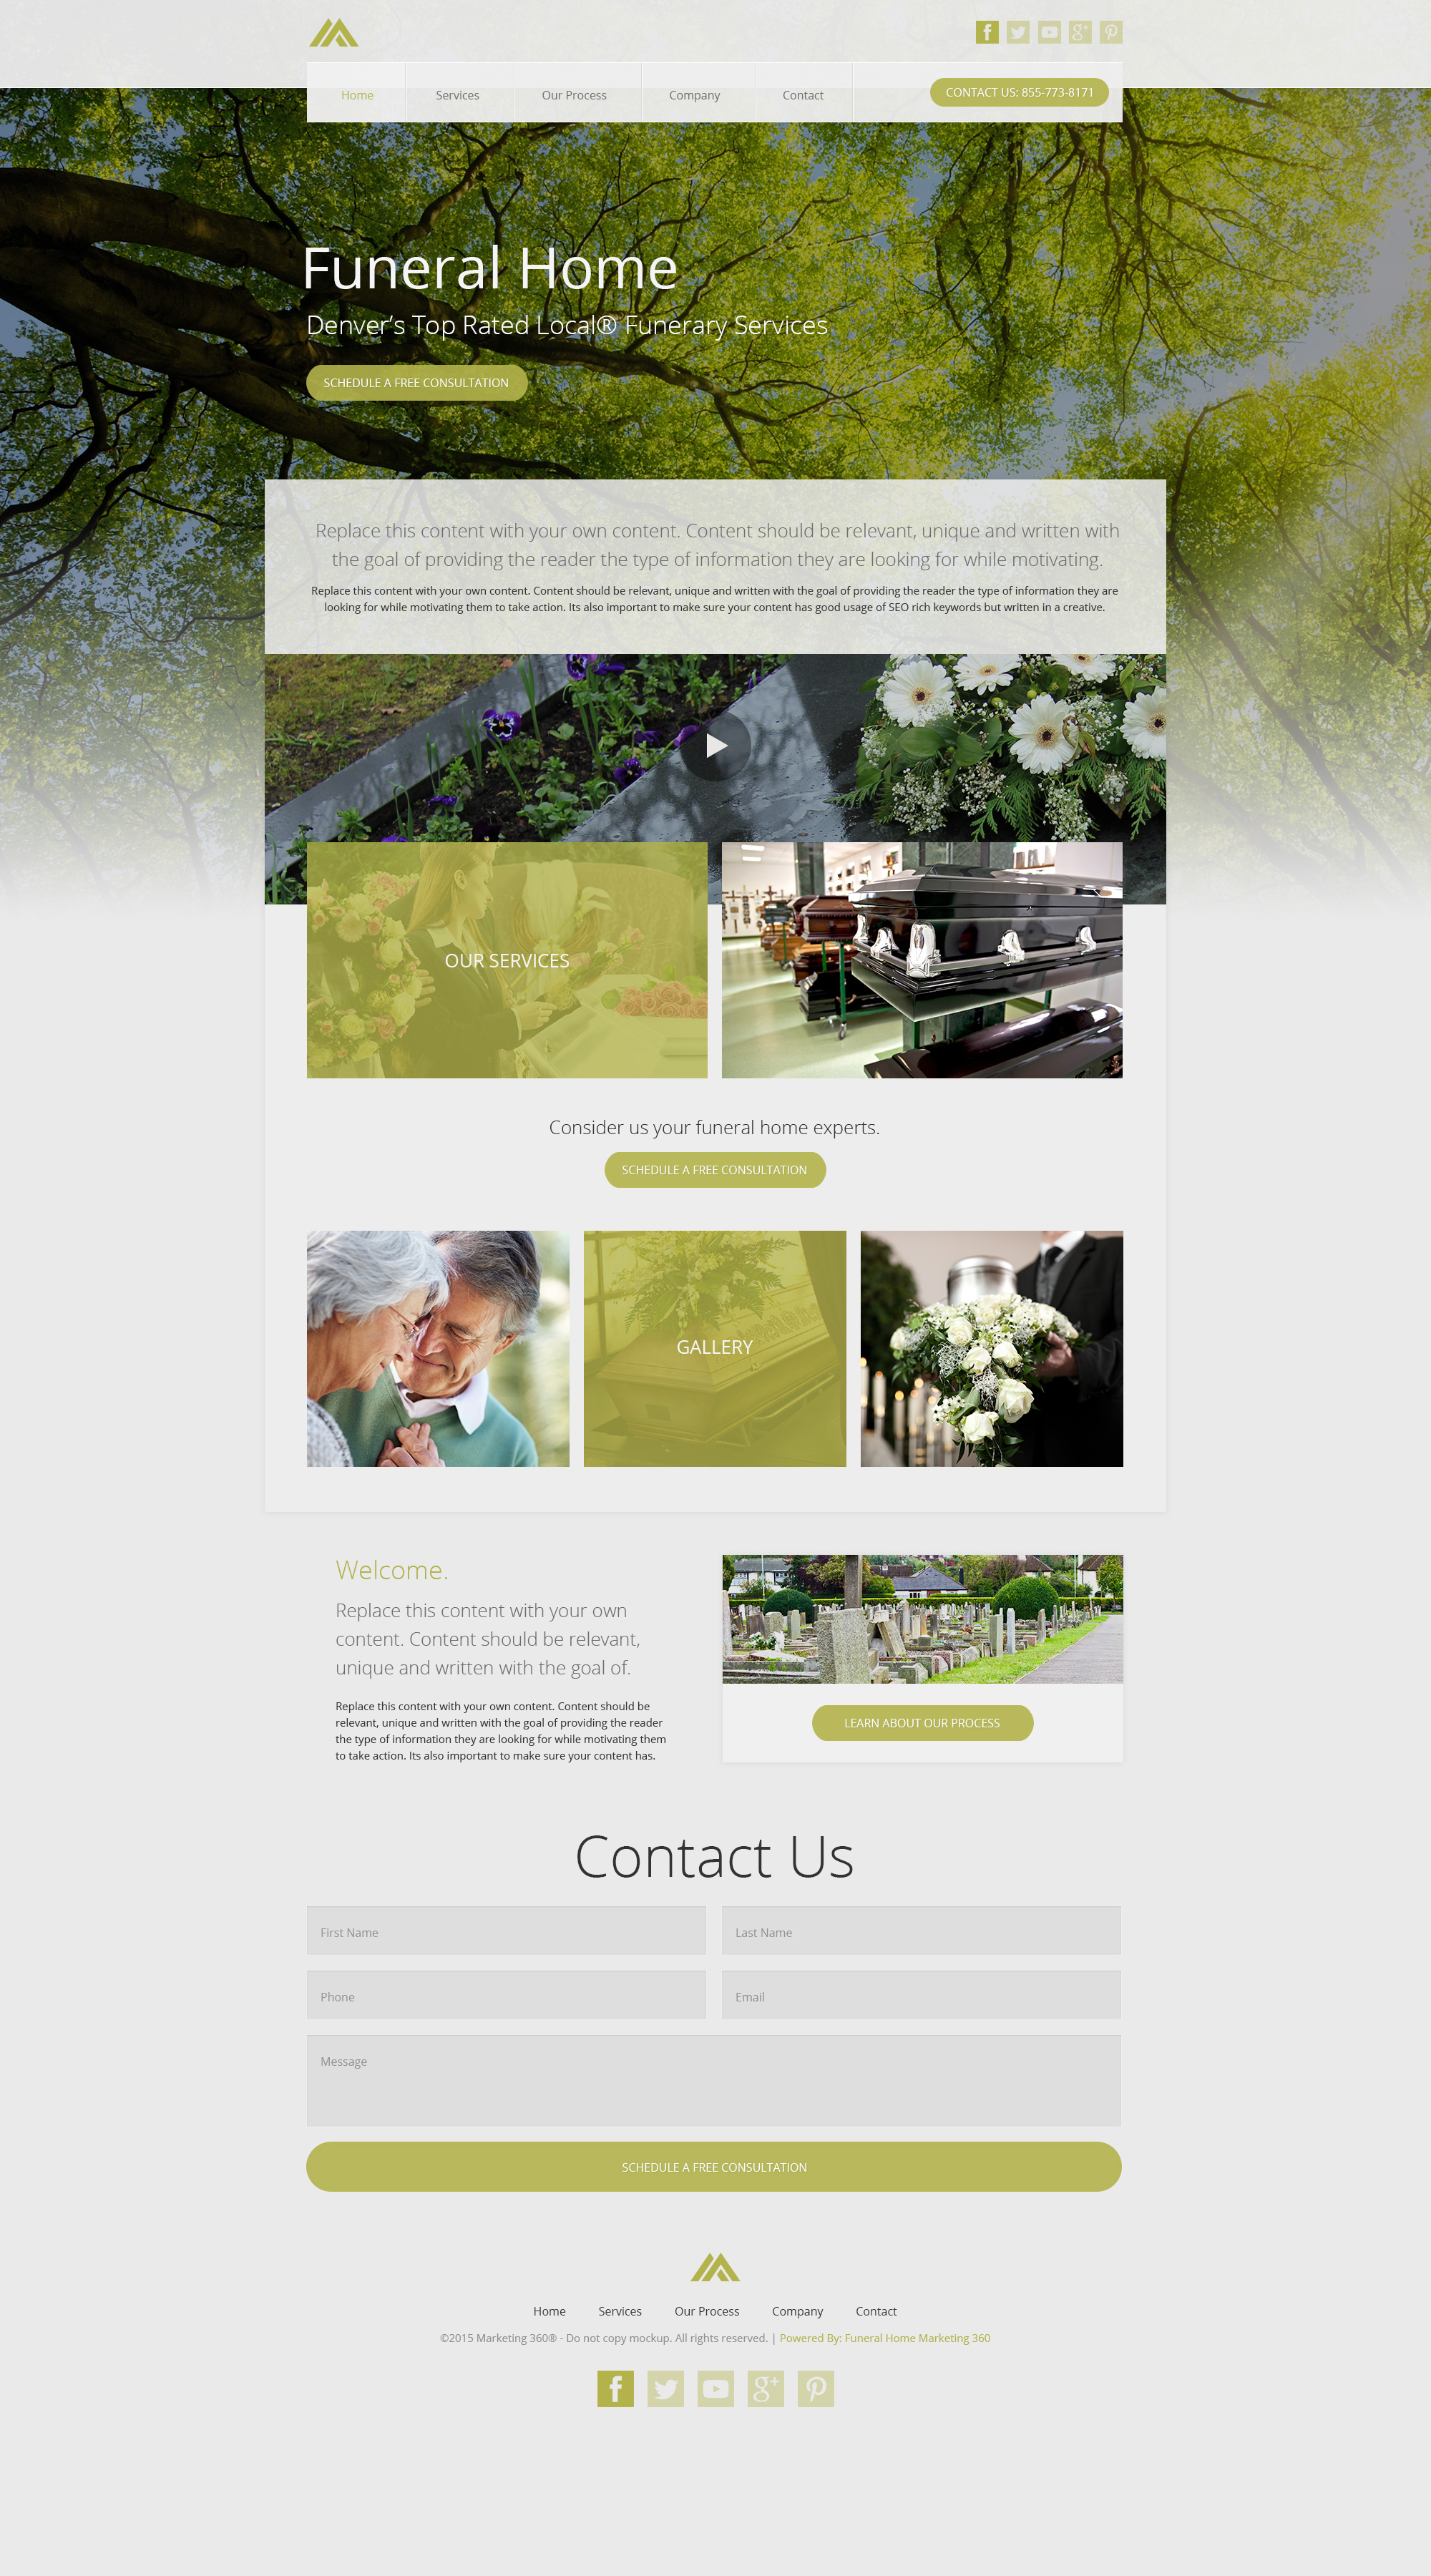 funeral home website templates mobile responsive designs. Black Bedroom Furniture Sets. Home Design Ideas